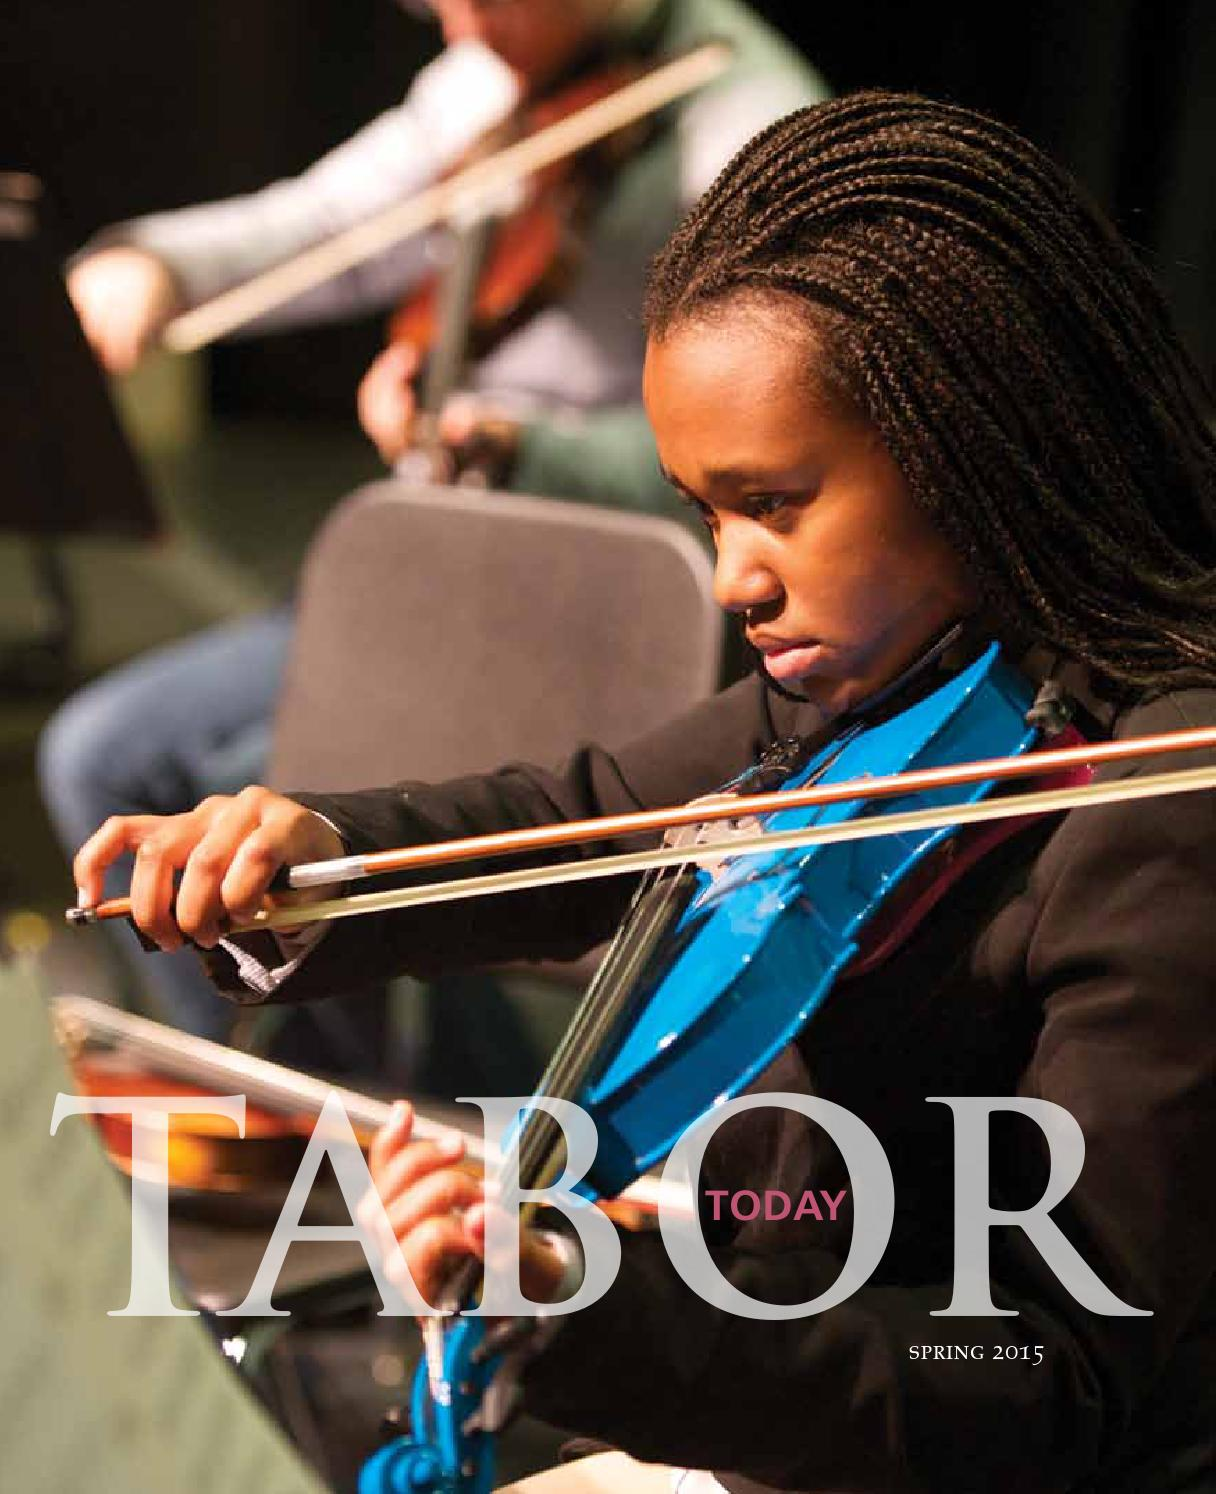 Tabor Today Spring 2015 by Tabor Academy - Issuu